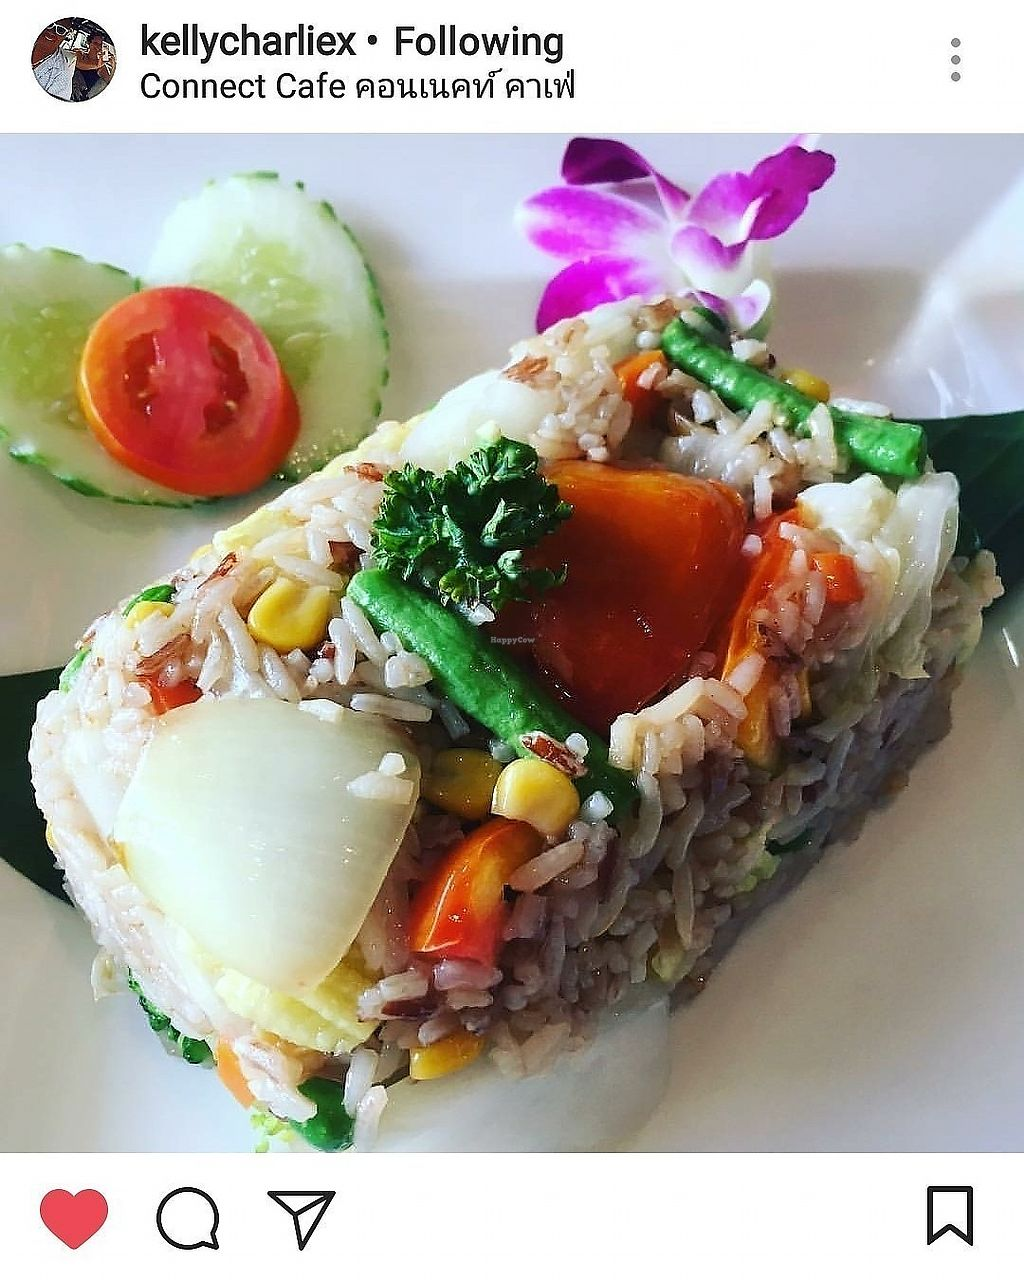 """Photo of Connect Cafe  by <a href=""""/members/profile/connectcafe"""">connectcafe</a> <br/>Fried rice mixed vegetables <br/> February 20, 2018  - <a href='/contact/abuse/image/111723/361551'>Report</a>"""